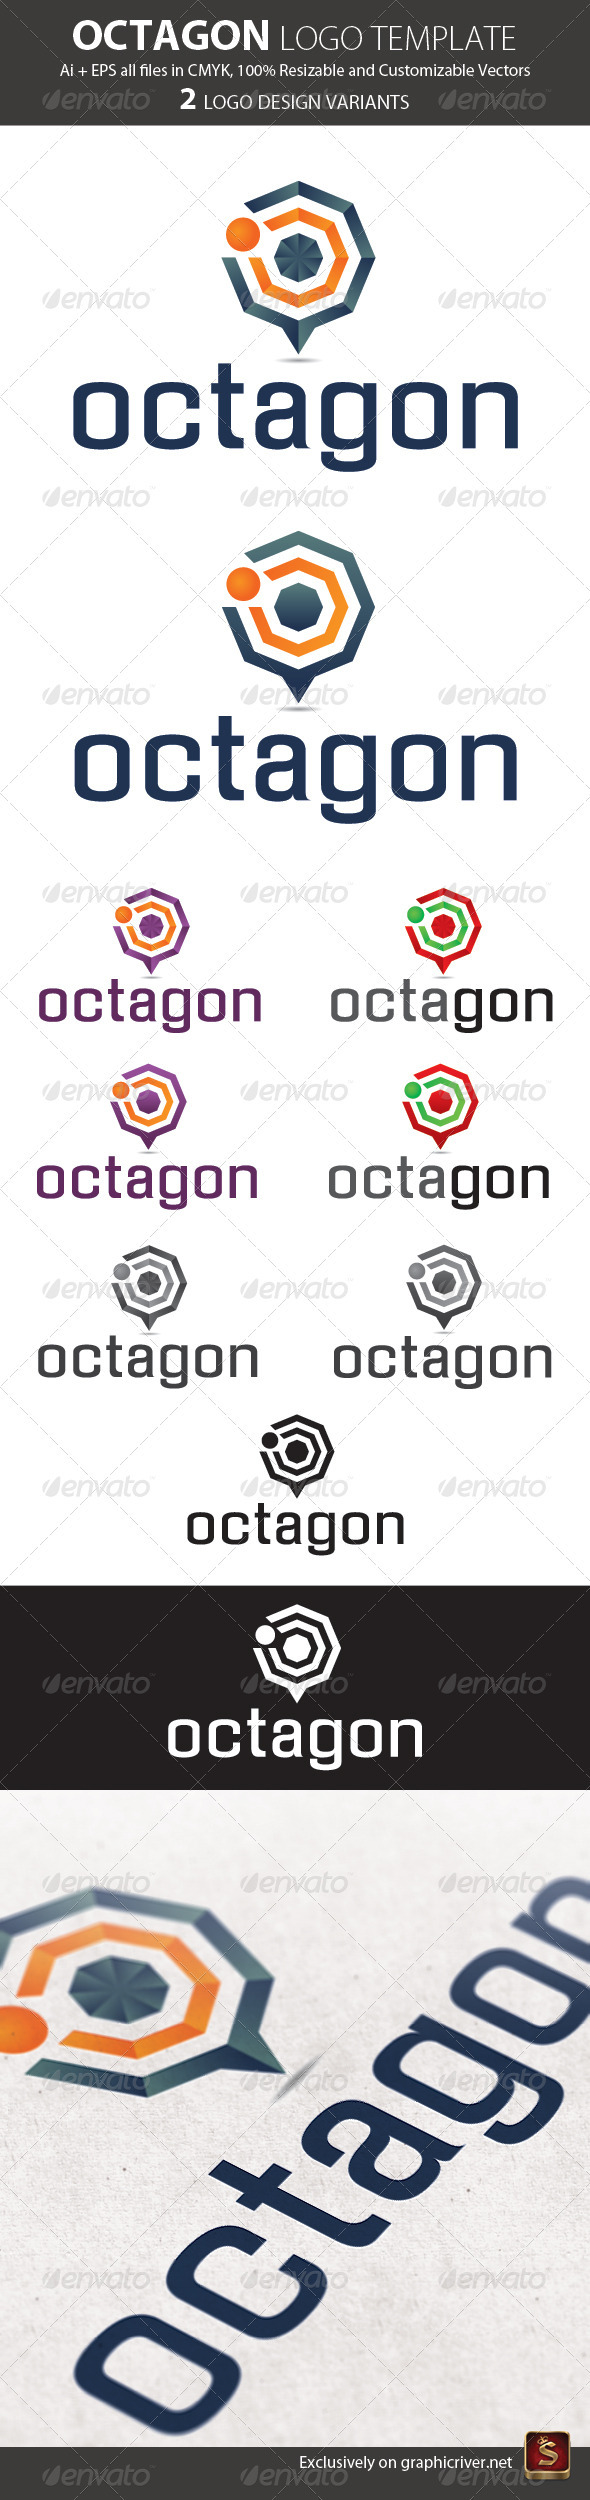 Octagon Logo Template - Vector Abstract